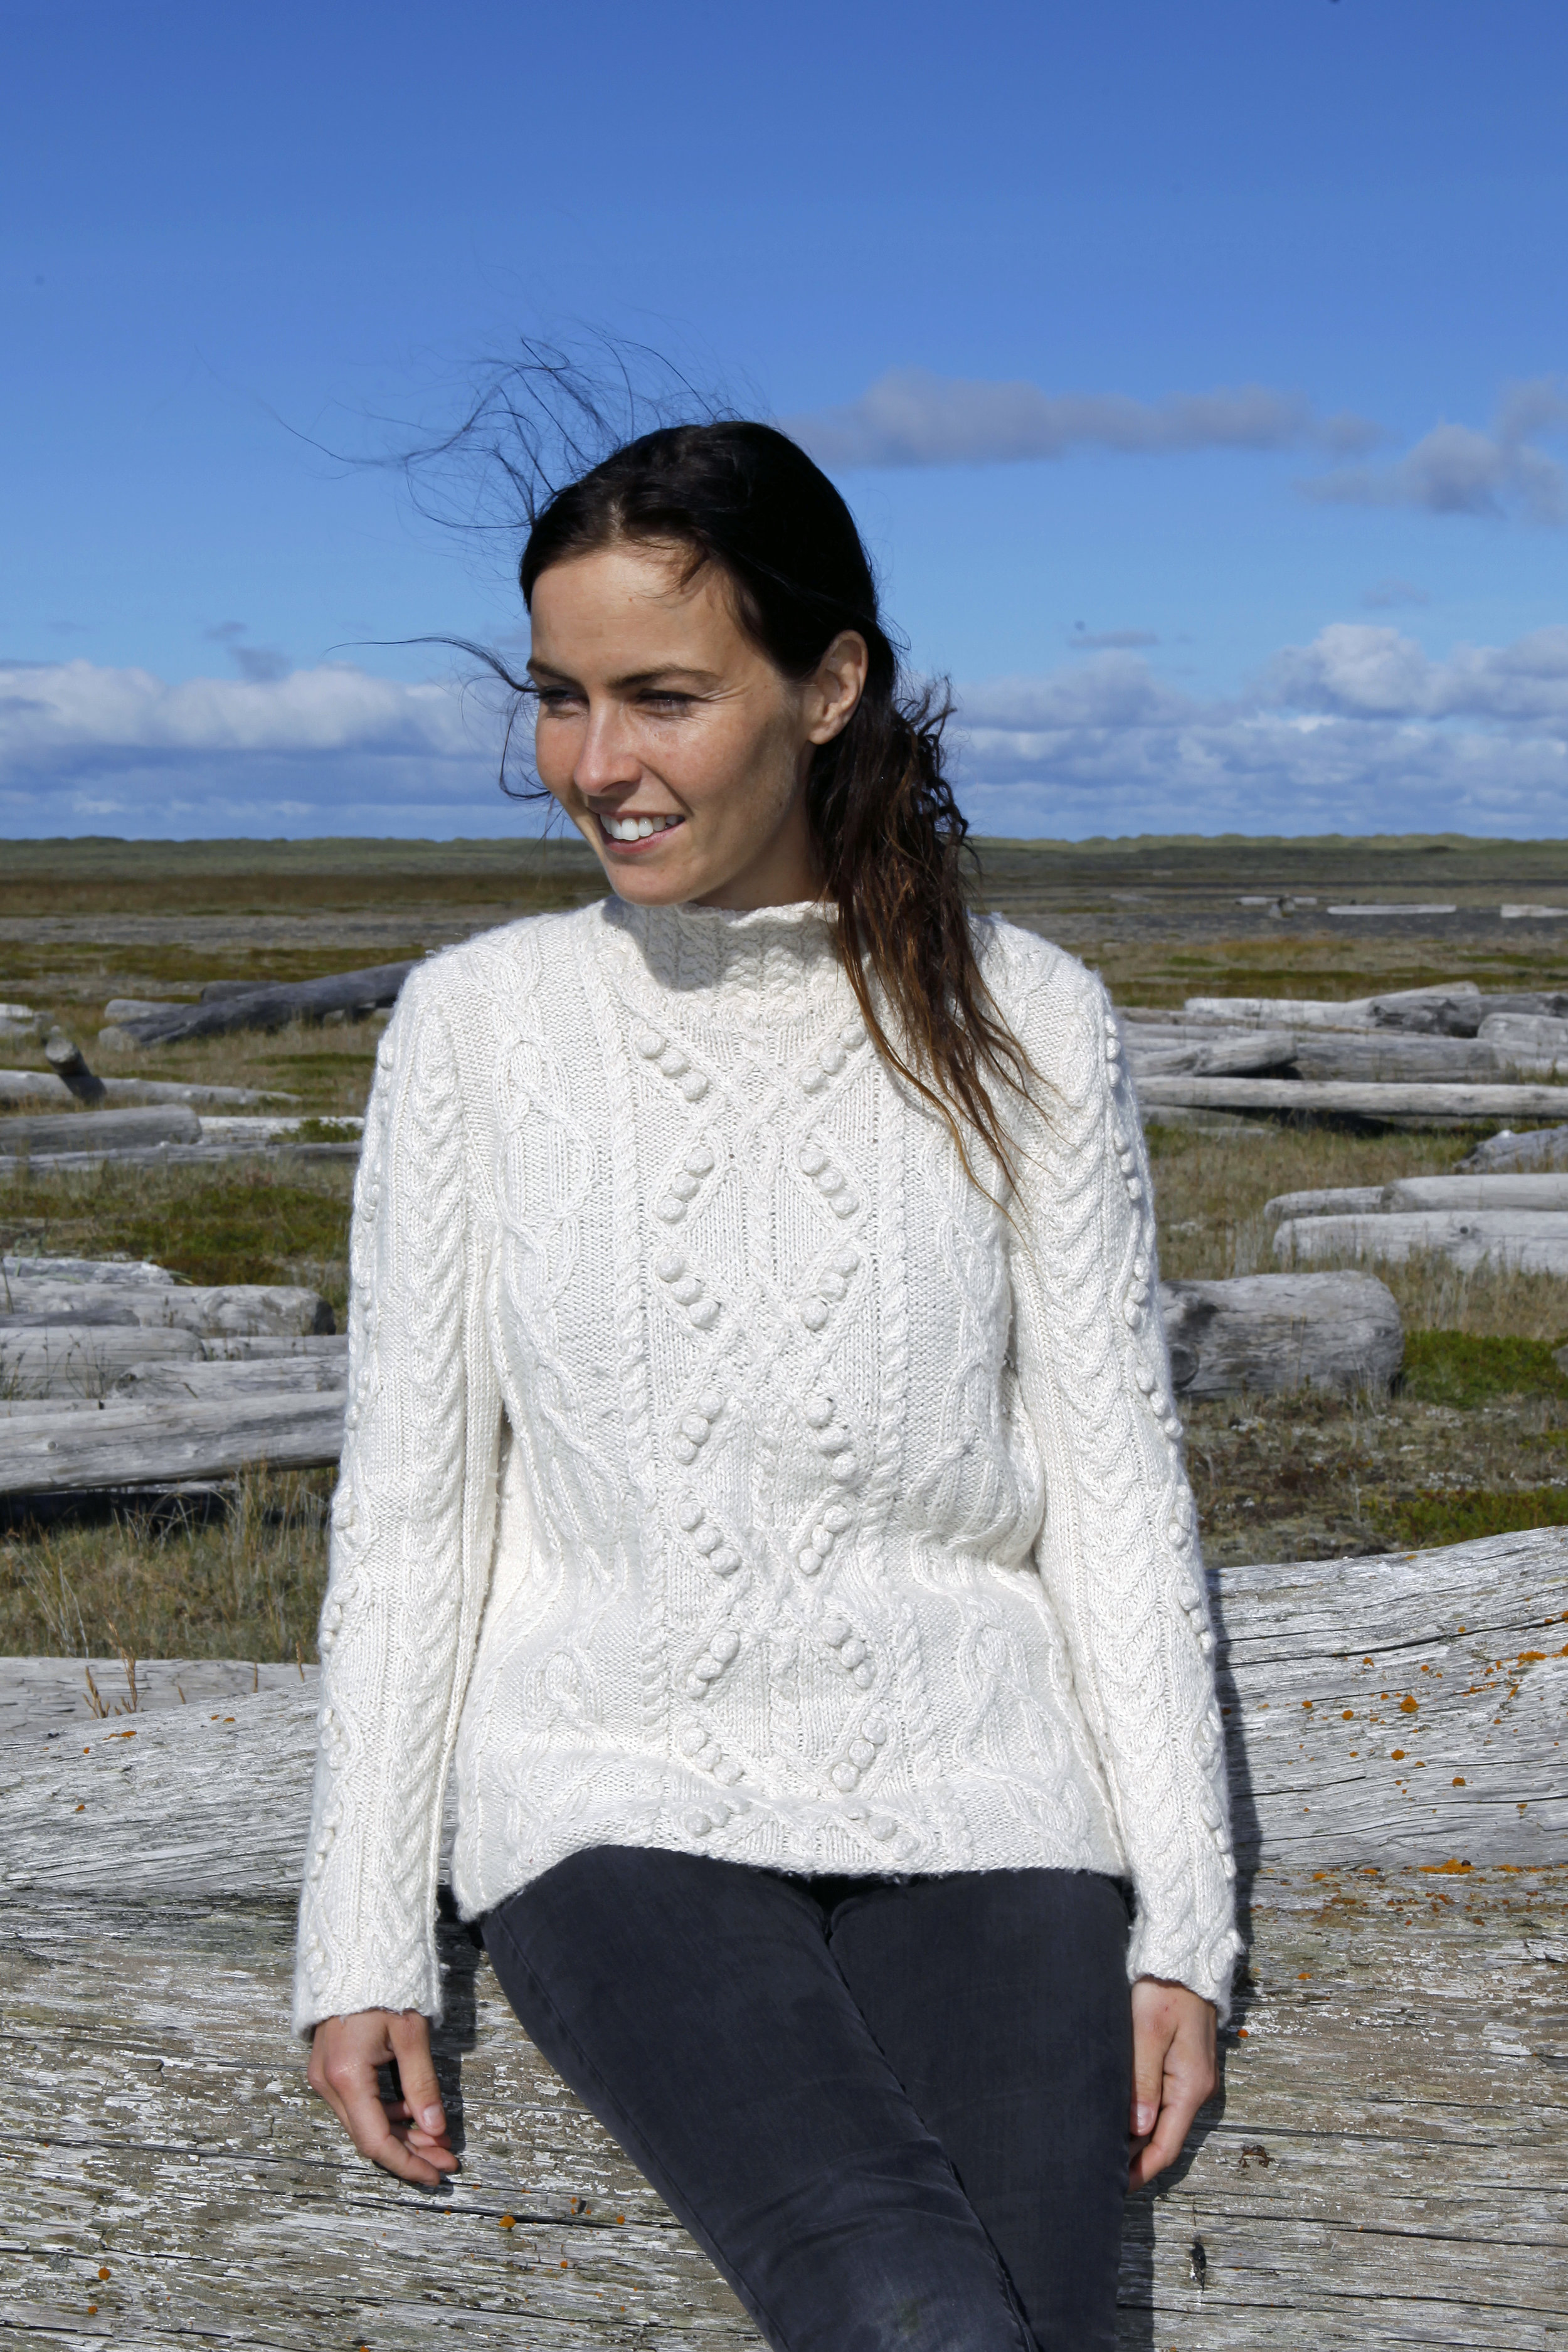 My beautiful daughter in law - Gígja - the grand photographer of most of my knitting